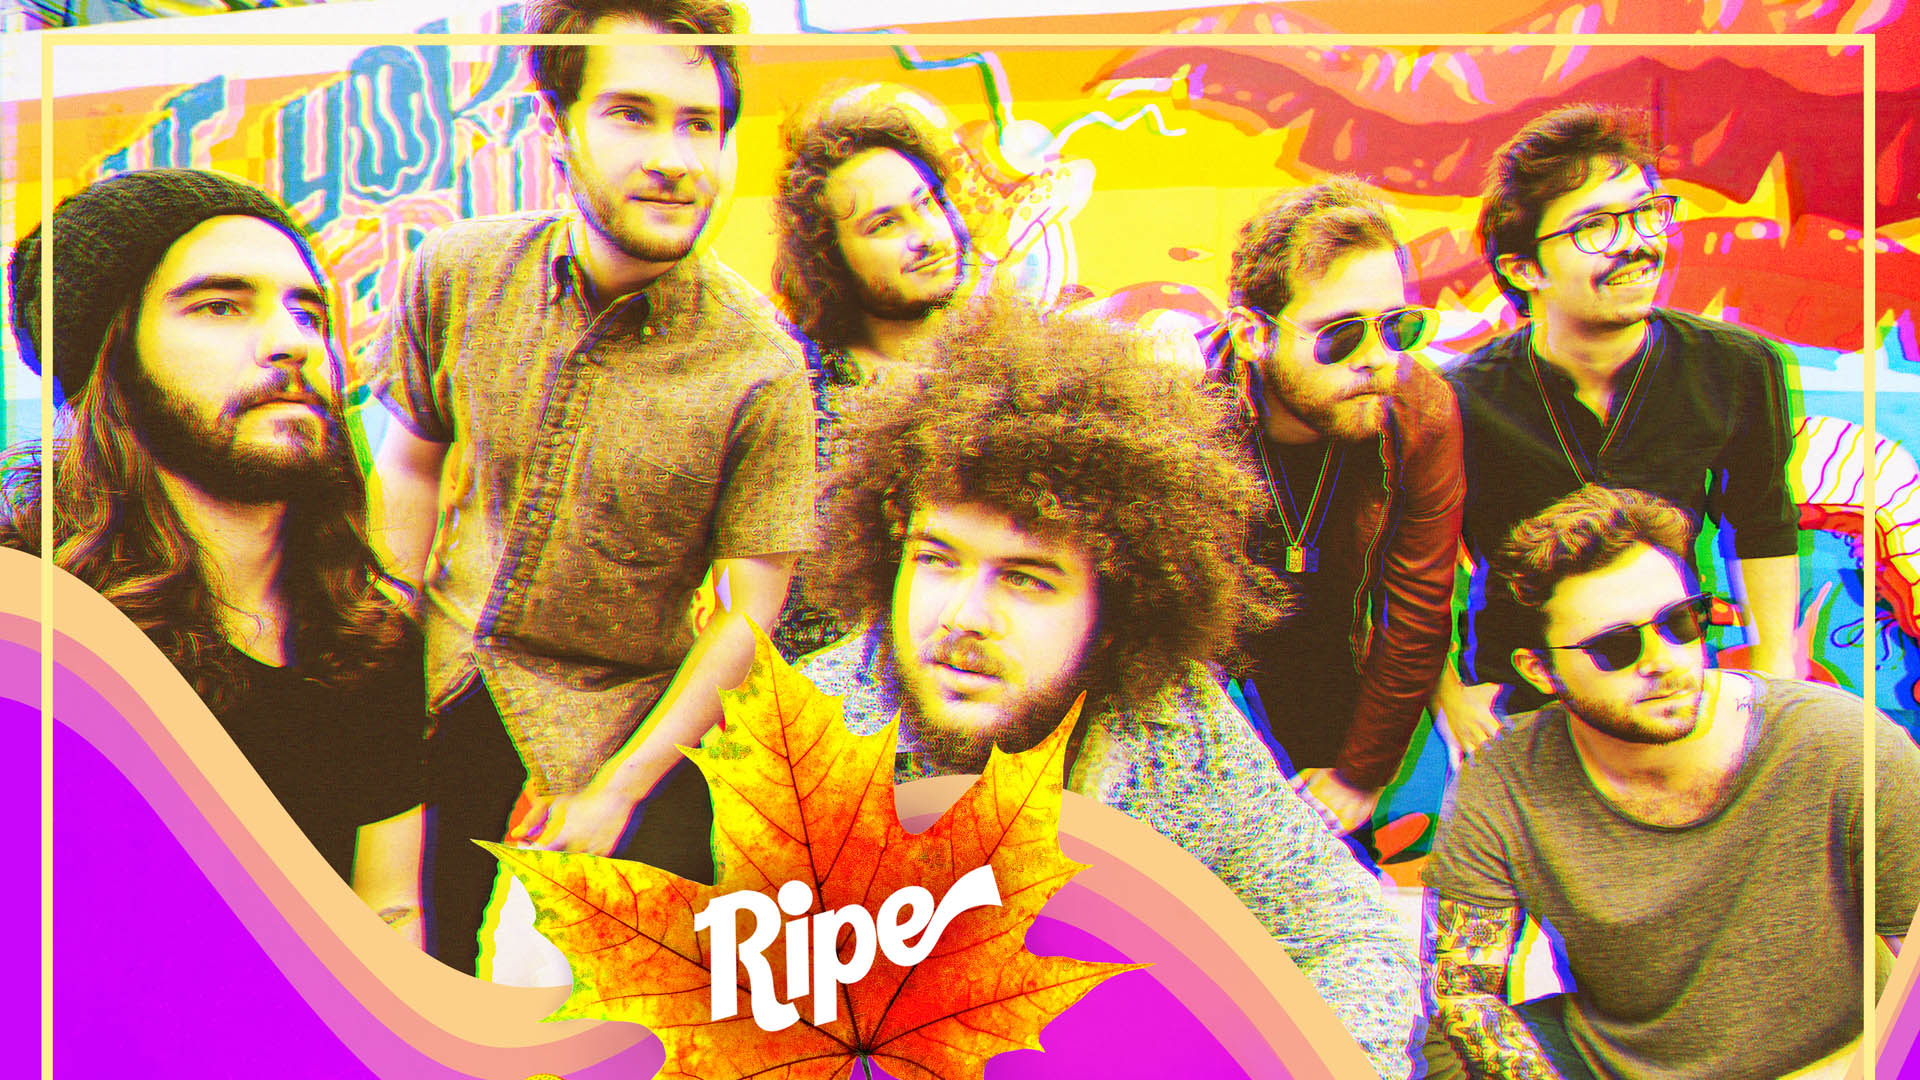 ripe-le-belmont-montreal-2017-11-30-tickets-1859